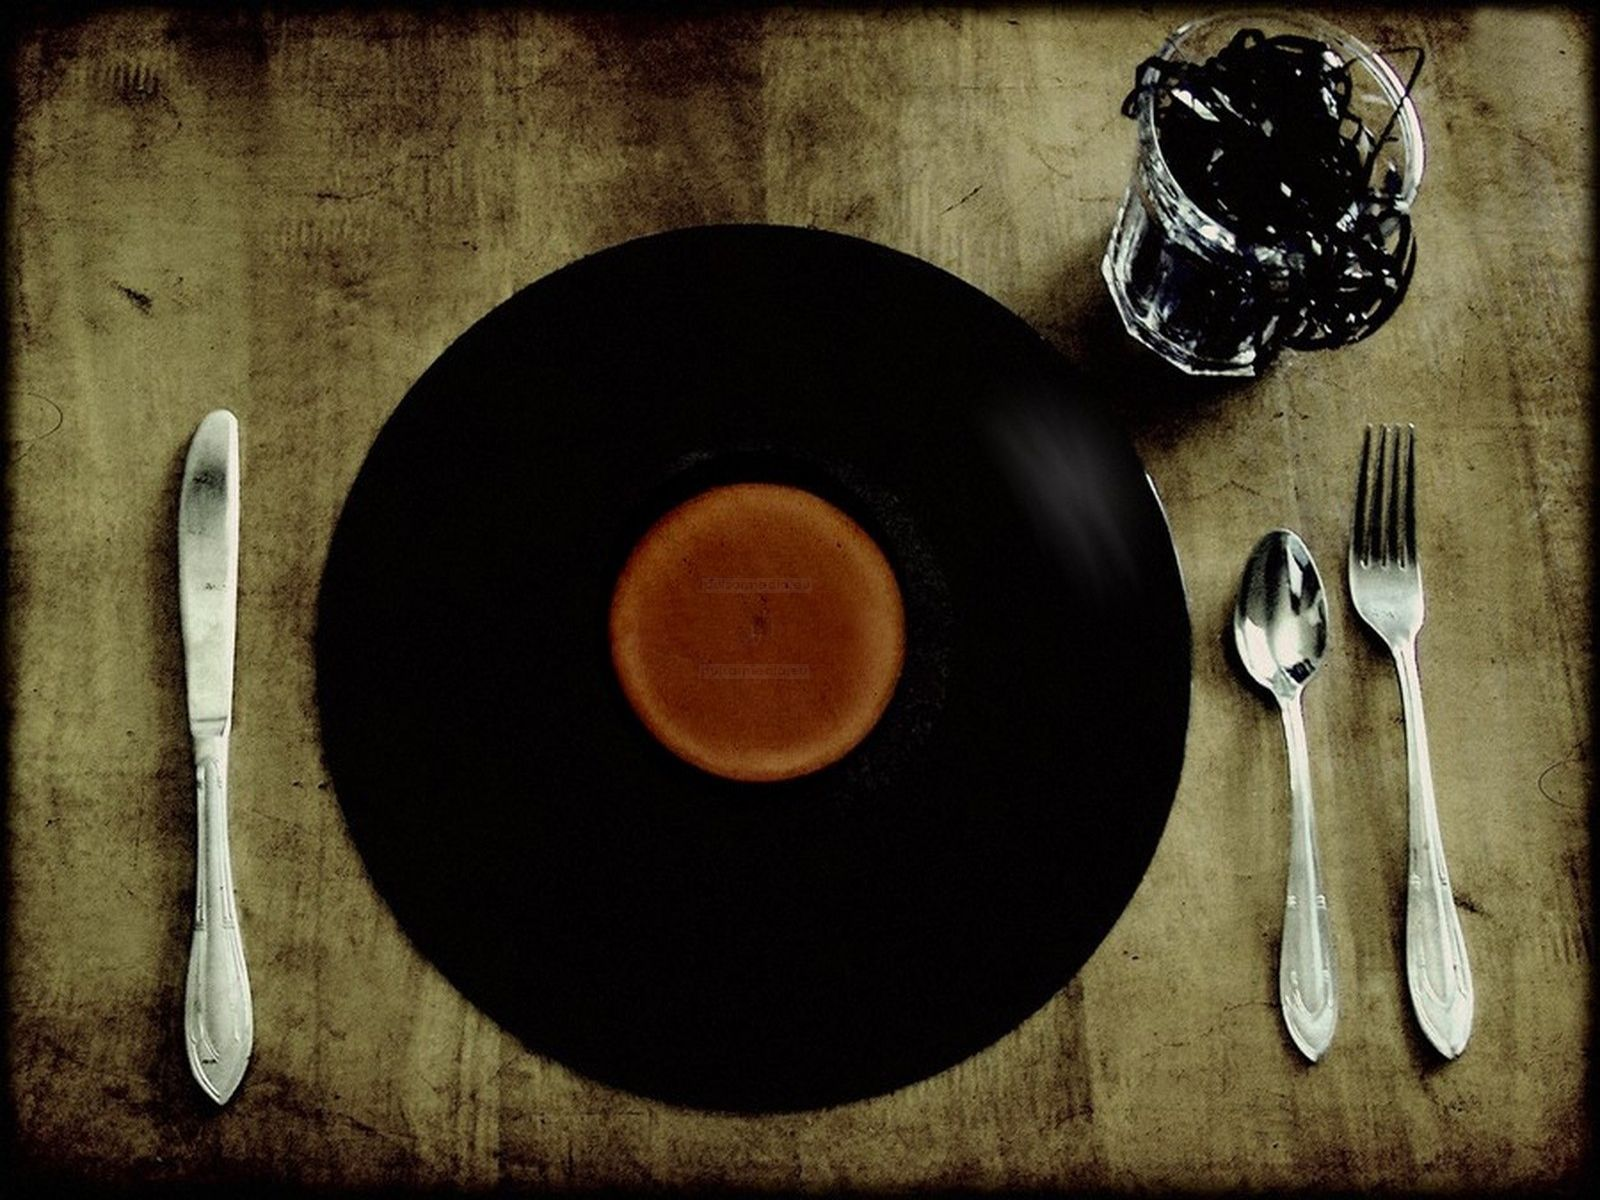 Cool Wallpaper Music Food - 11352dce784a41bde62f3f6de4c5c6c3  Best Photo Reference_365965.jpg